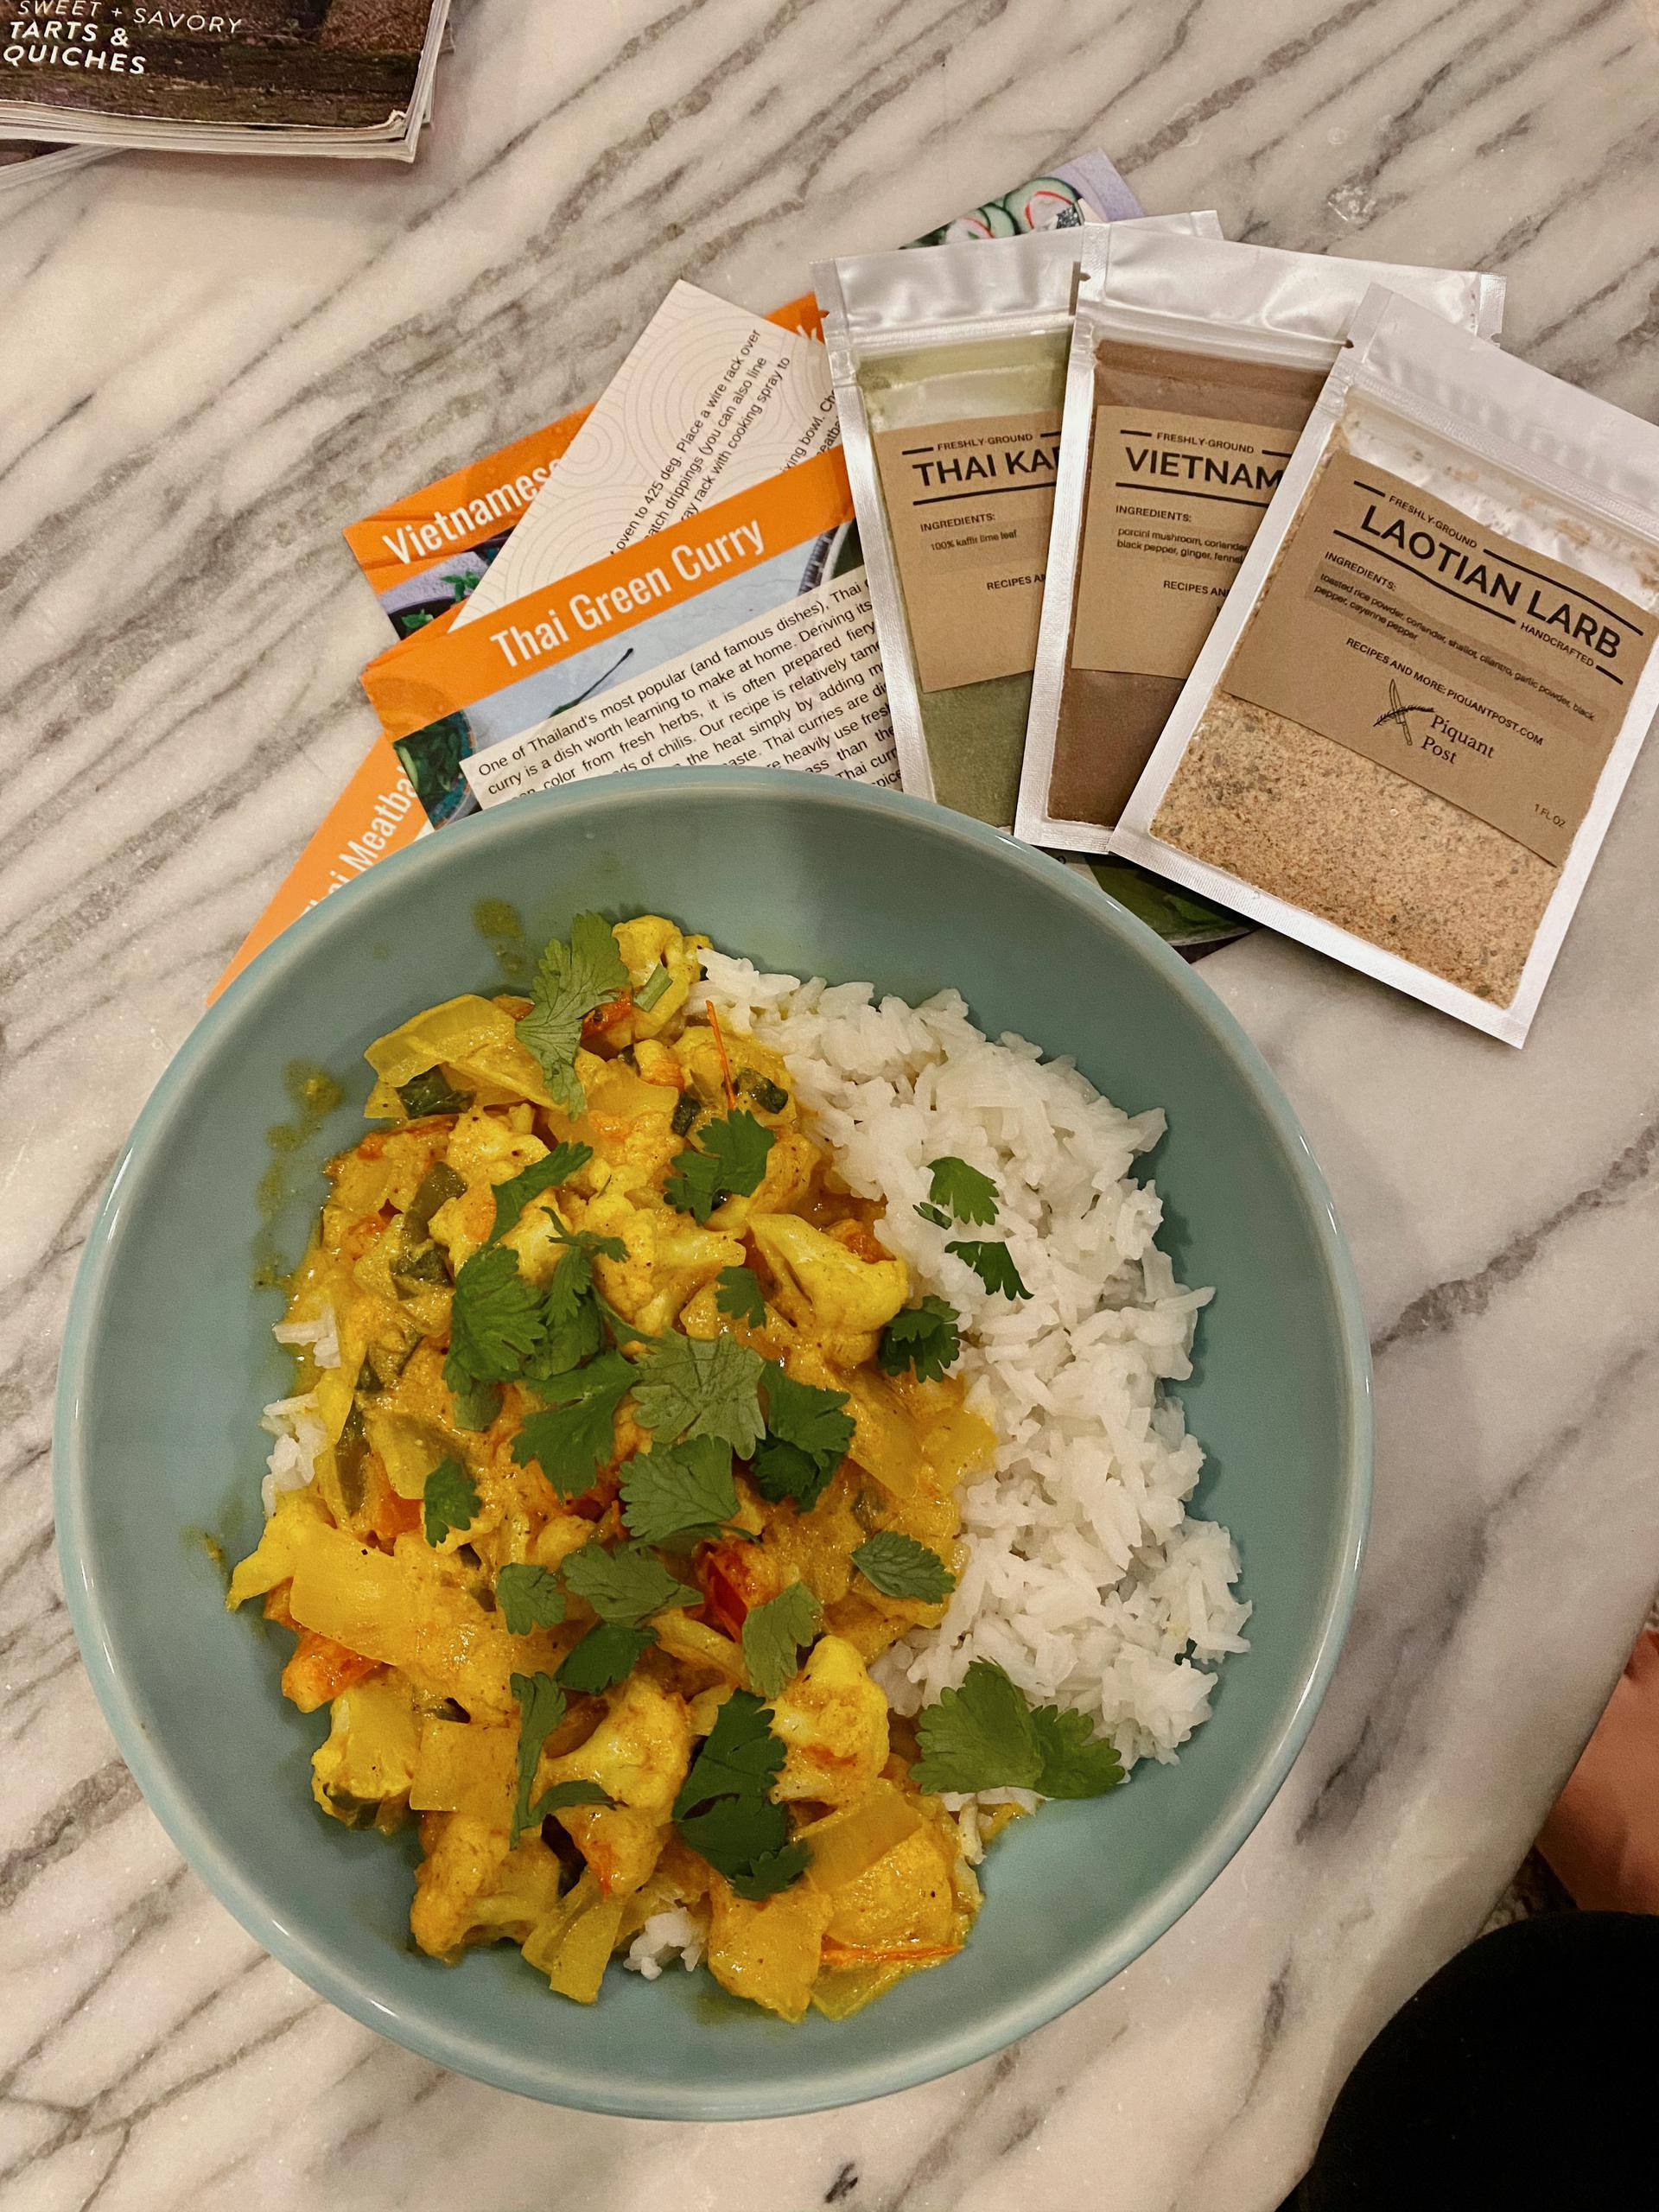 kayla's plate of curry and rice next to several spice packets